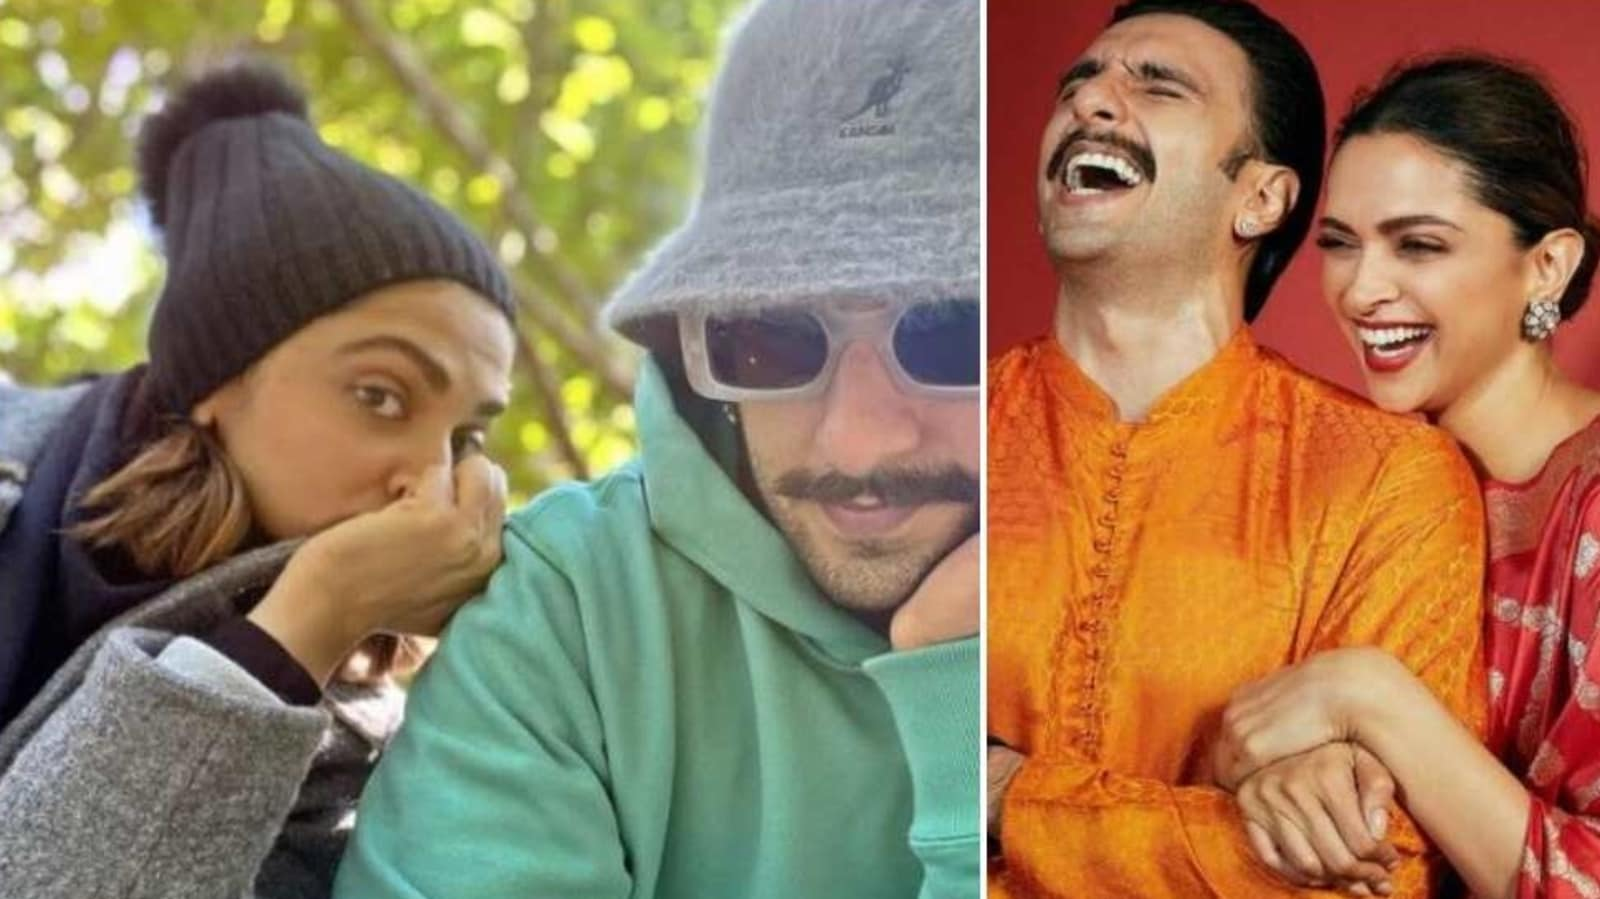 Deepika Padukone's 'peek-a-boo' moment with husband Ranveer Singh gets a thumbs up from fans, see here - Hindustan Times